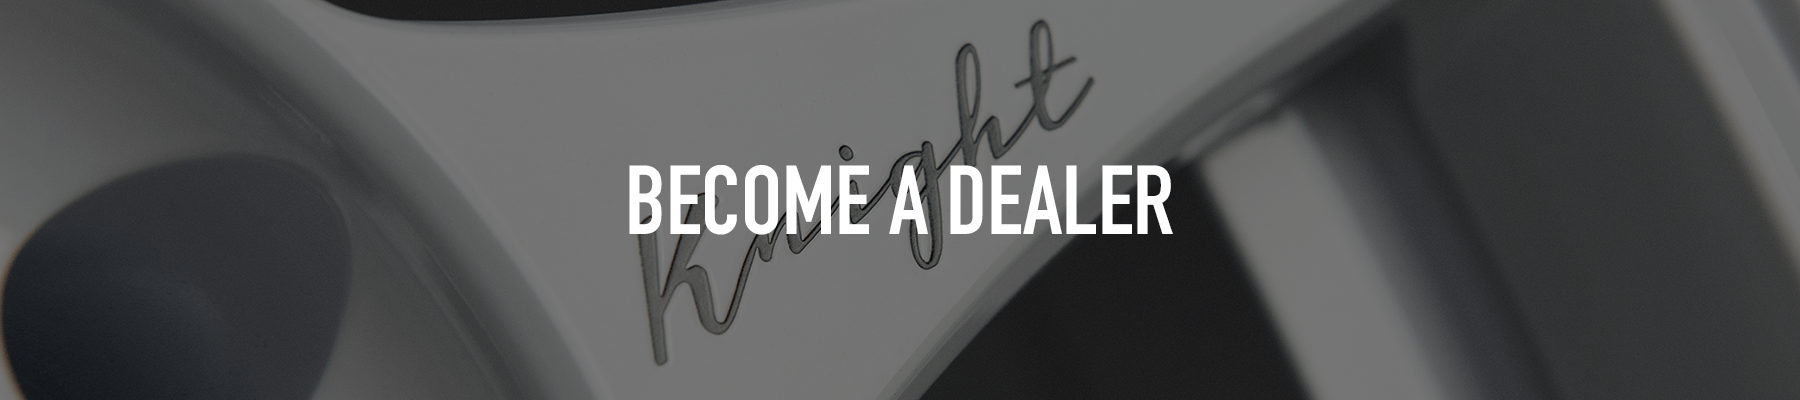 BECOME A DEALER HEADER